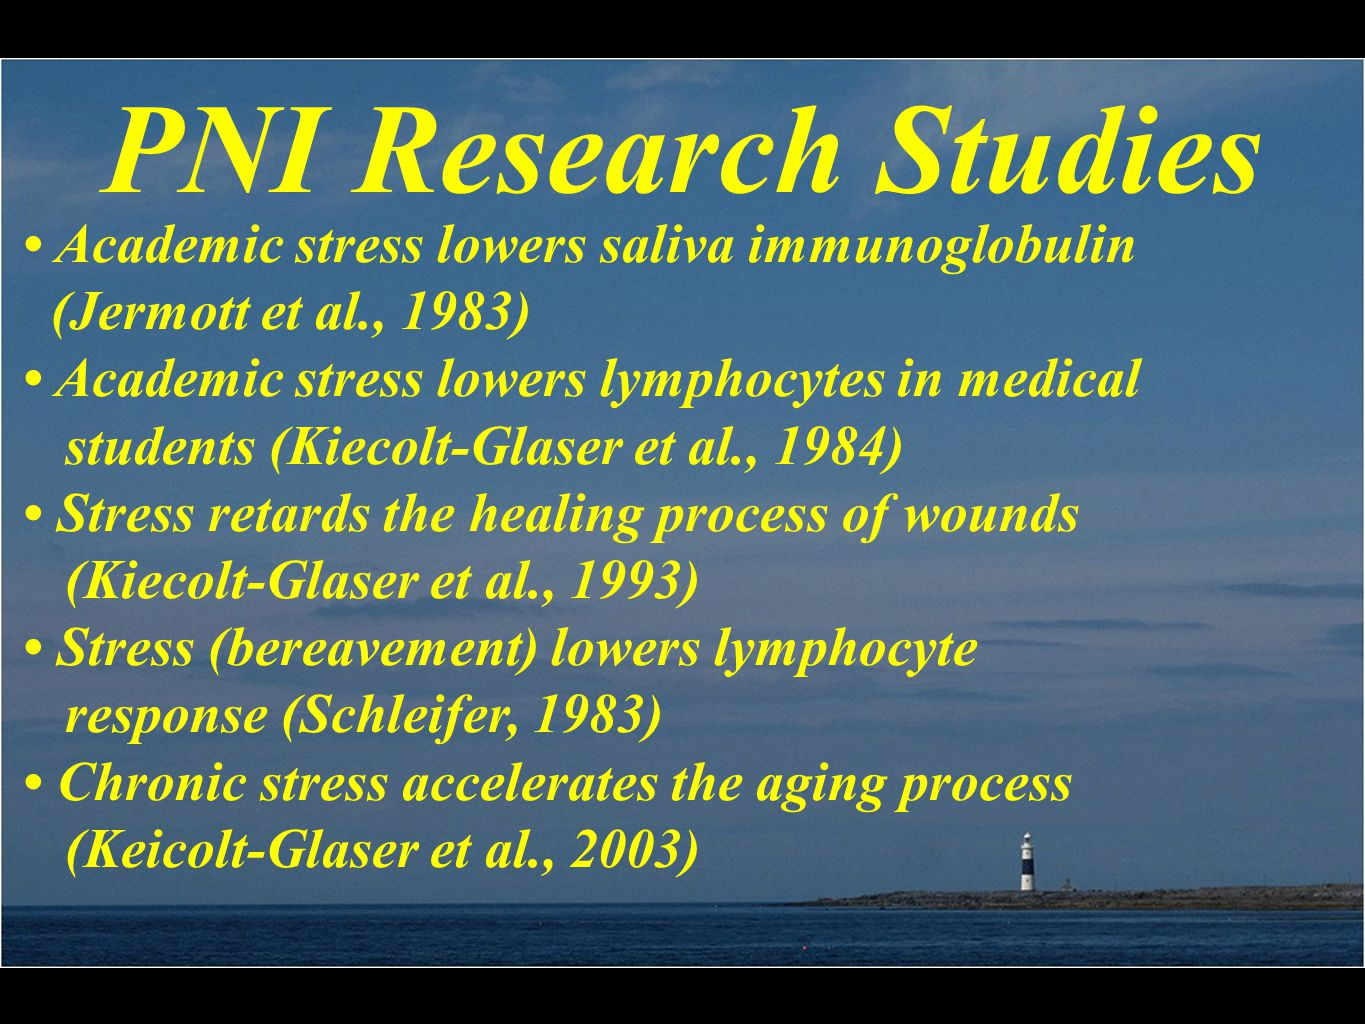 PNI Research Studies Academic stress lowers saliva immunoglobulin (Jermott et al., 1983) Academic stress lowers lymphocytes in medical students (Kiecolt-Glaser et al., 1984) Stress retards the healing process of wounds (Kiecolt-Glaser et al., 1993) Stress (bereavement) lowers lymphocyte response (Schleifer, 1983) Chronic stress accelerates the aging process (Keicolt-Glaser et al., 2003)